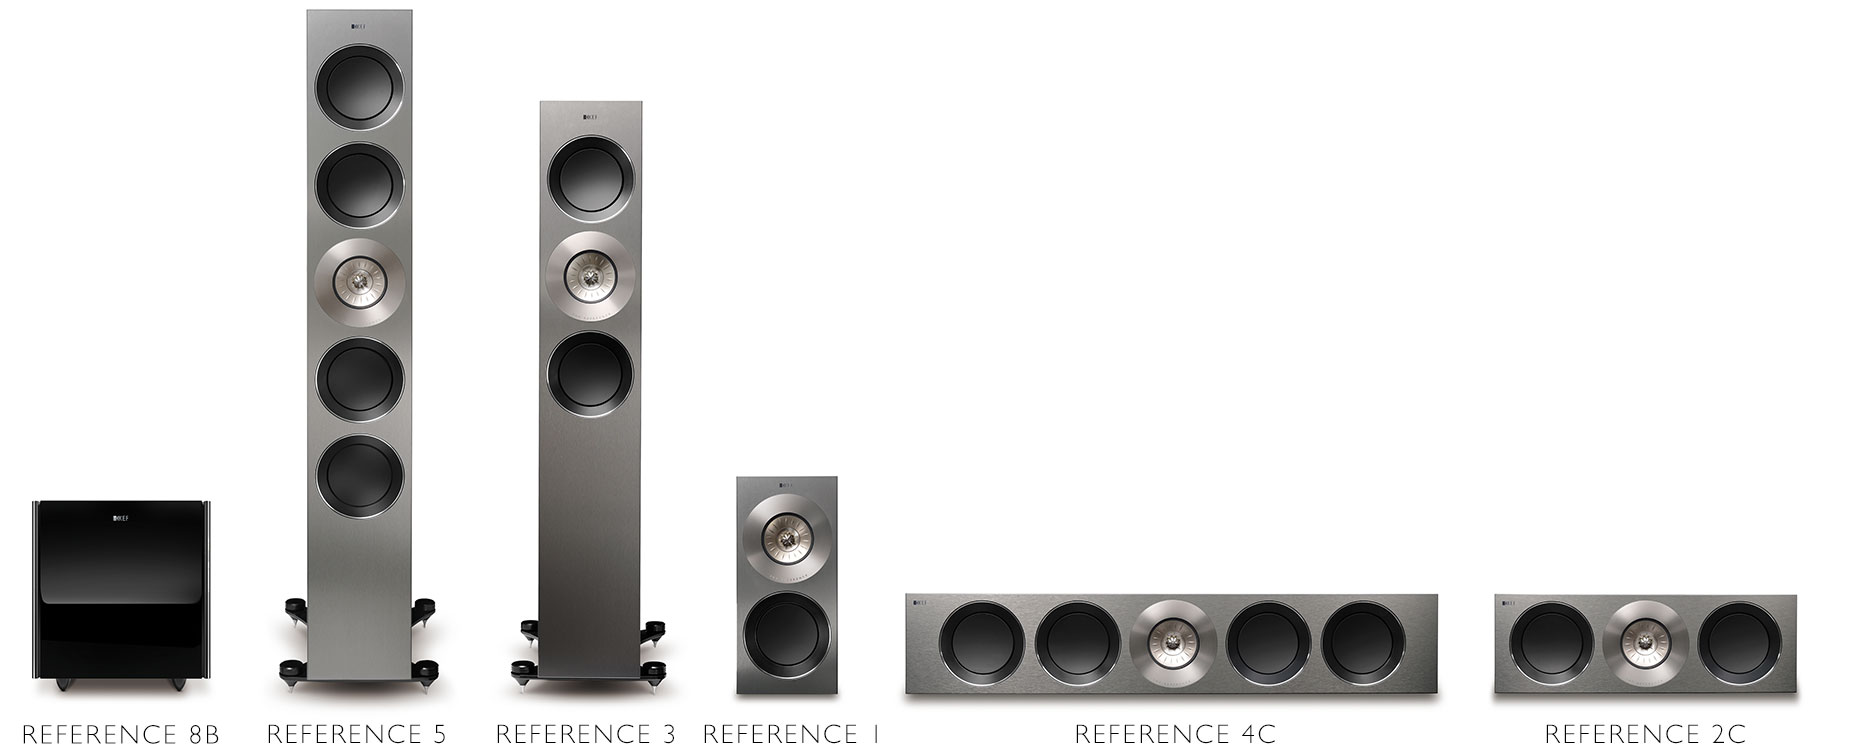 KEF REFERENCE Series family of speakers.